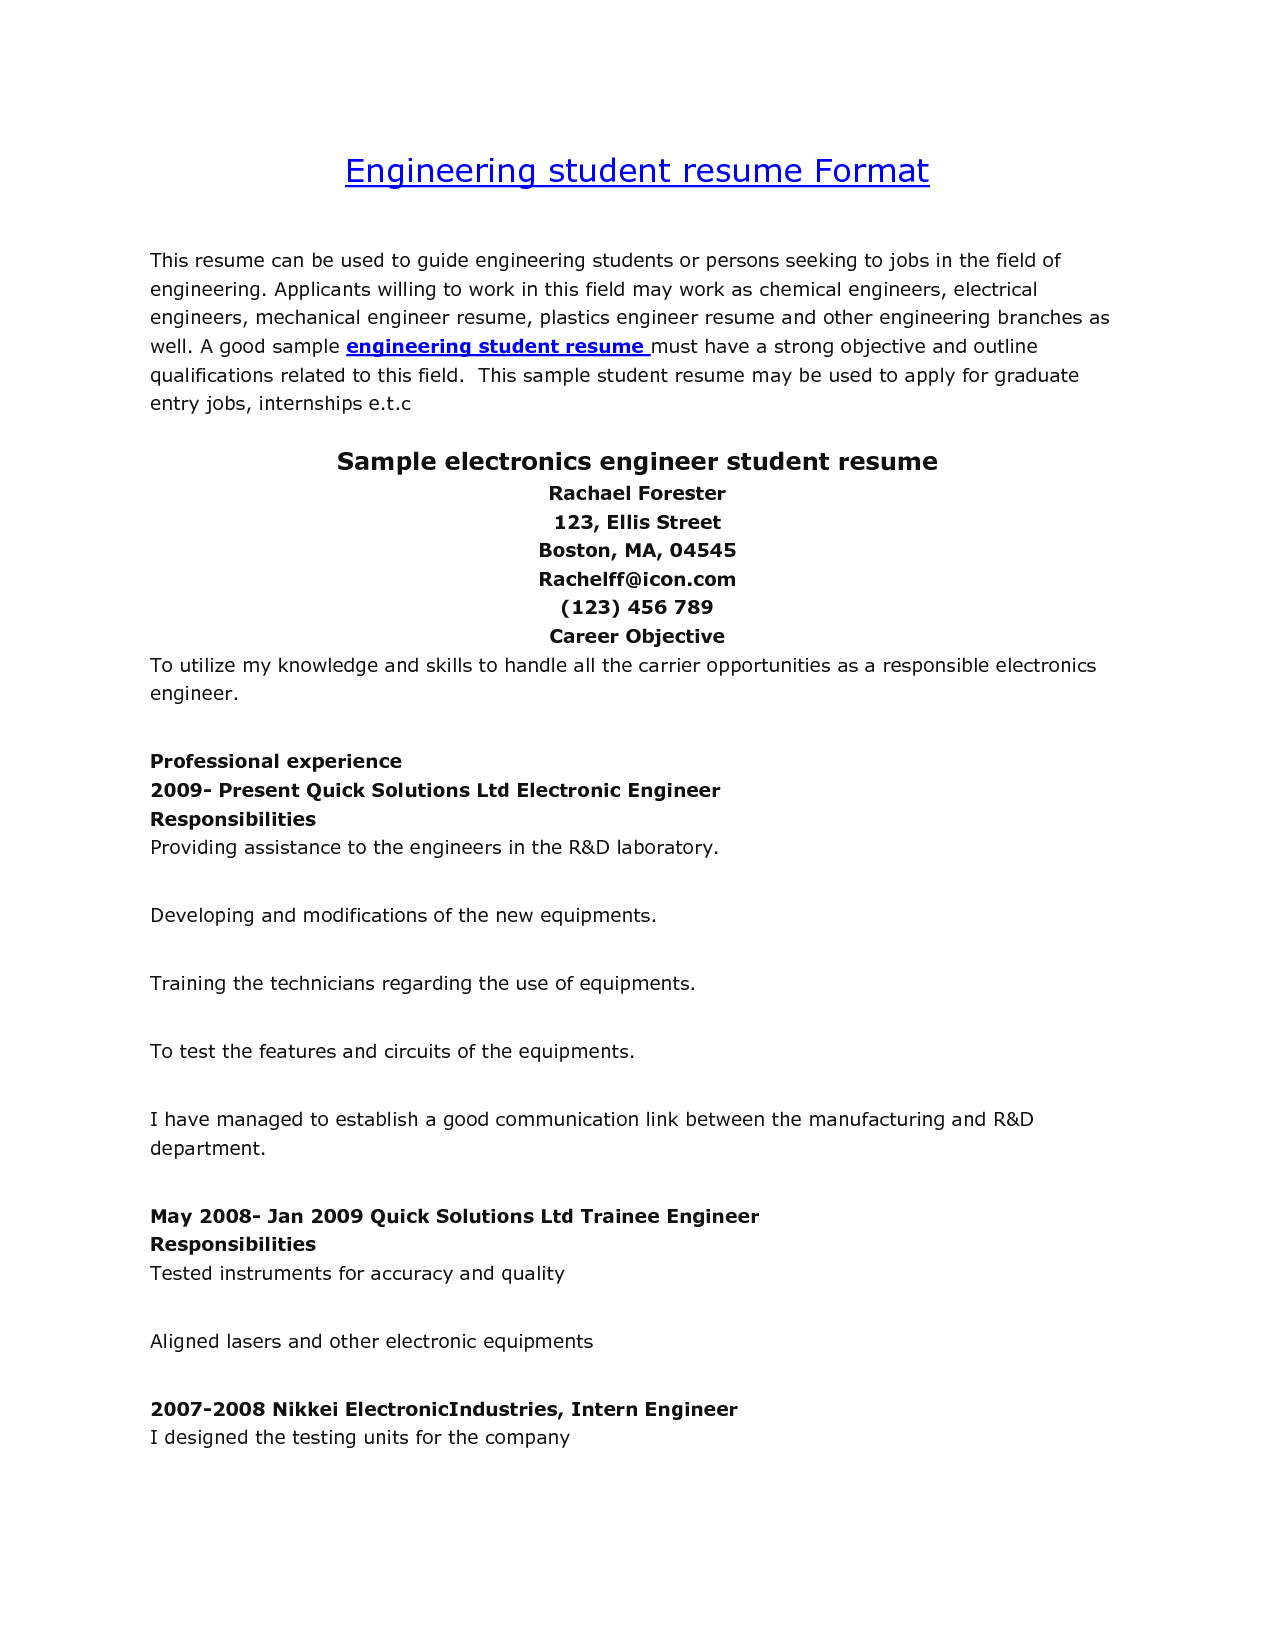 Electronic Engineer Student Resume electronic engineer student